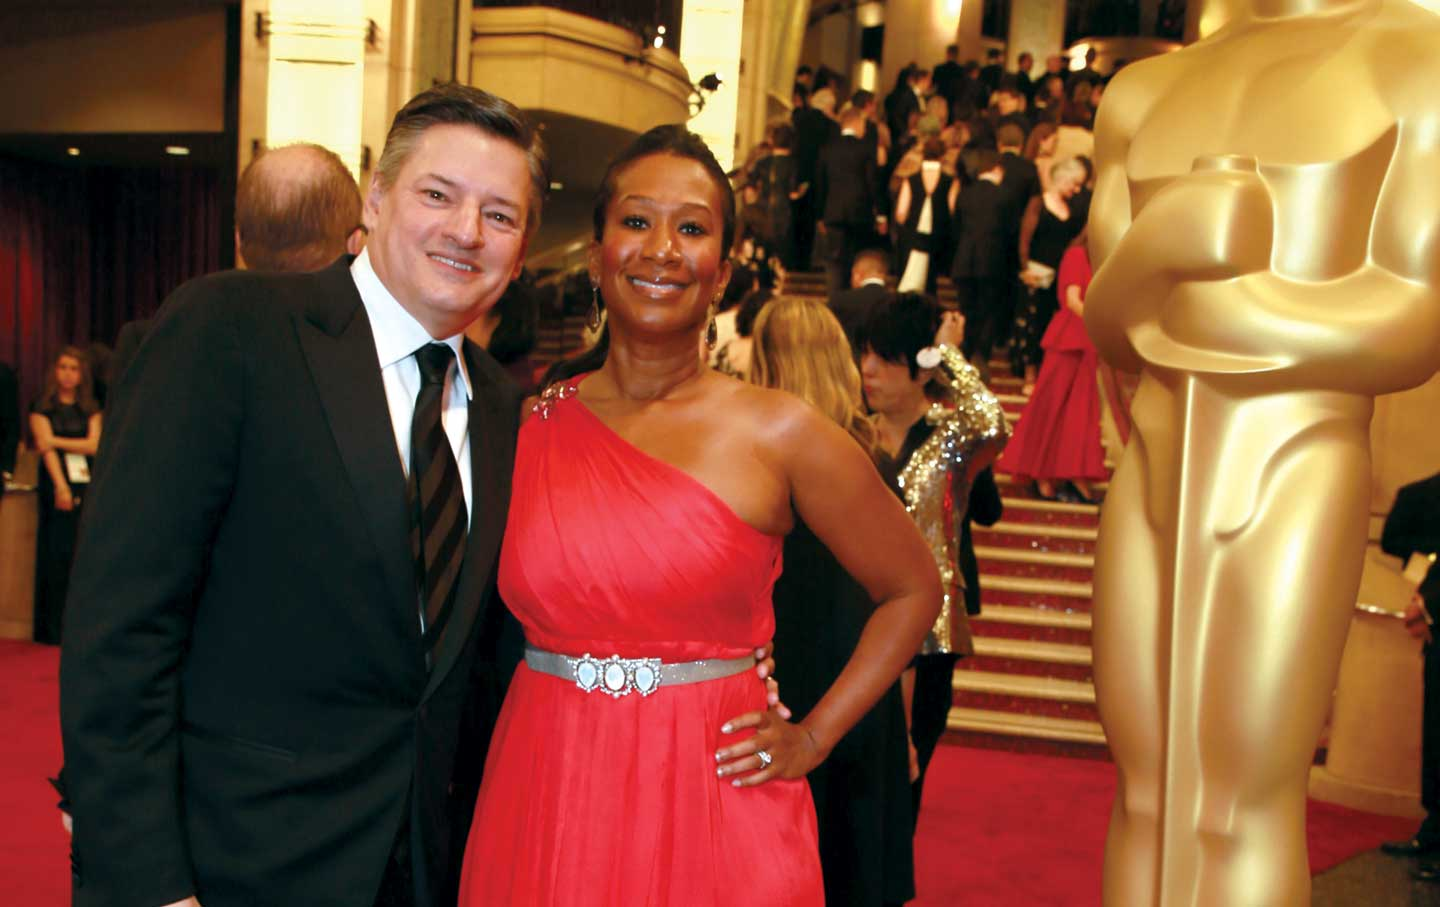 Ted-Sarandos-of-Netflix-and-Nicole-Avant-at-the-87th-Academy-Awards